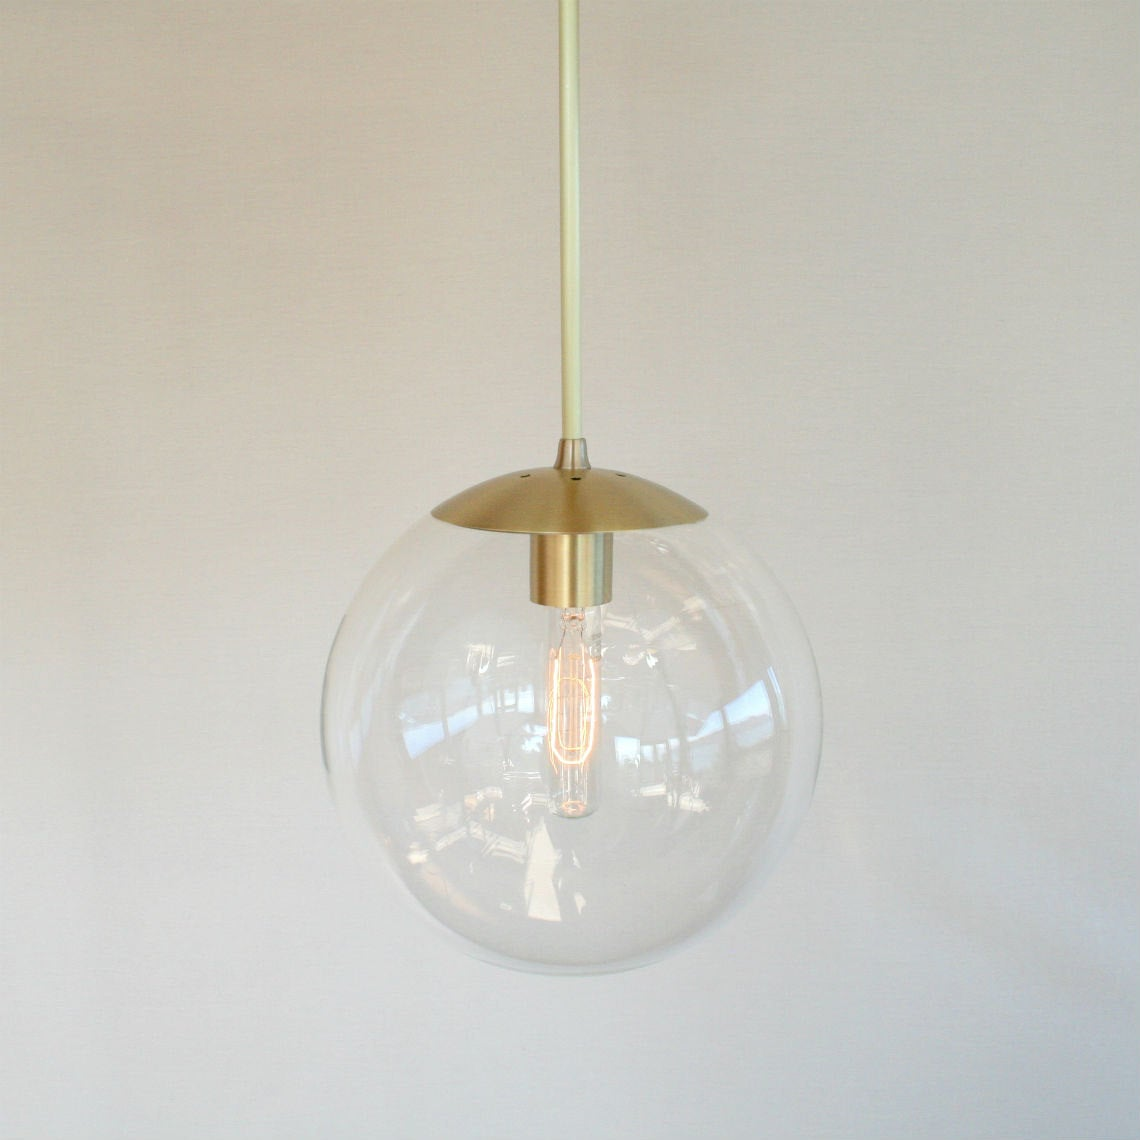 Orbiter 10 Pendant Light With Brass Stem Mid Century